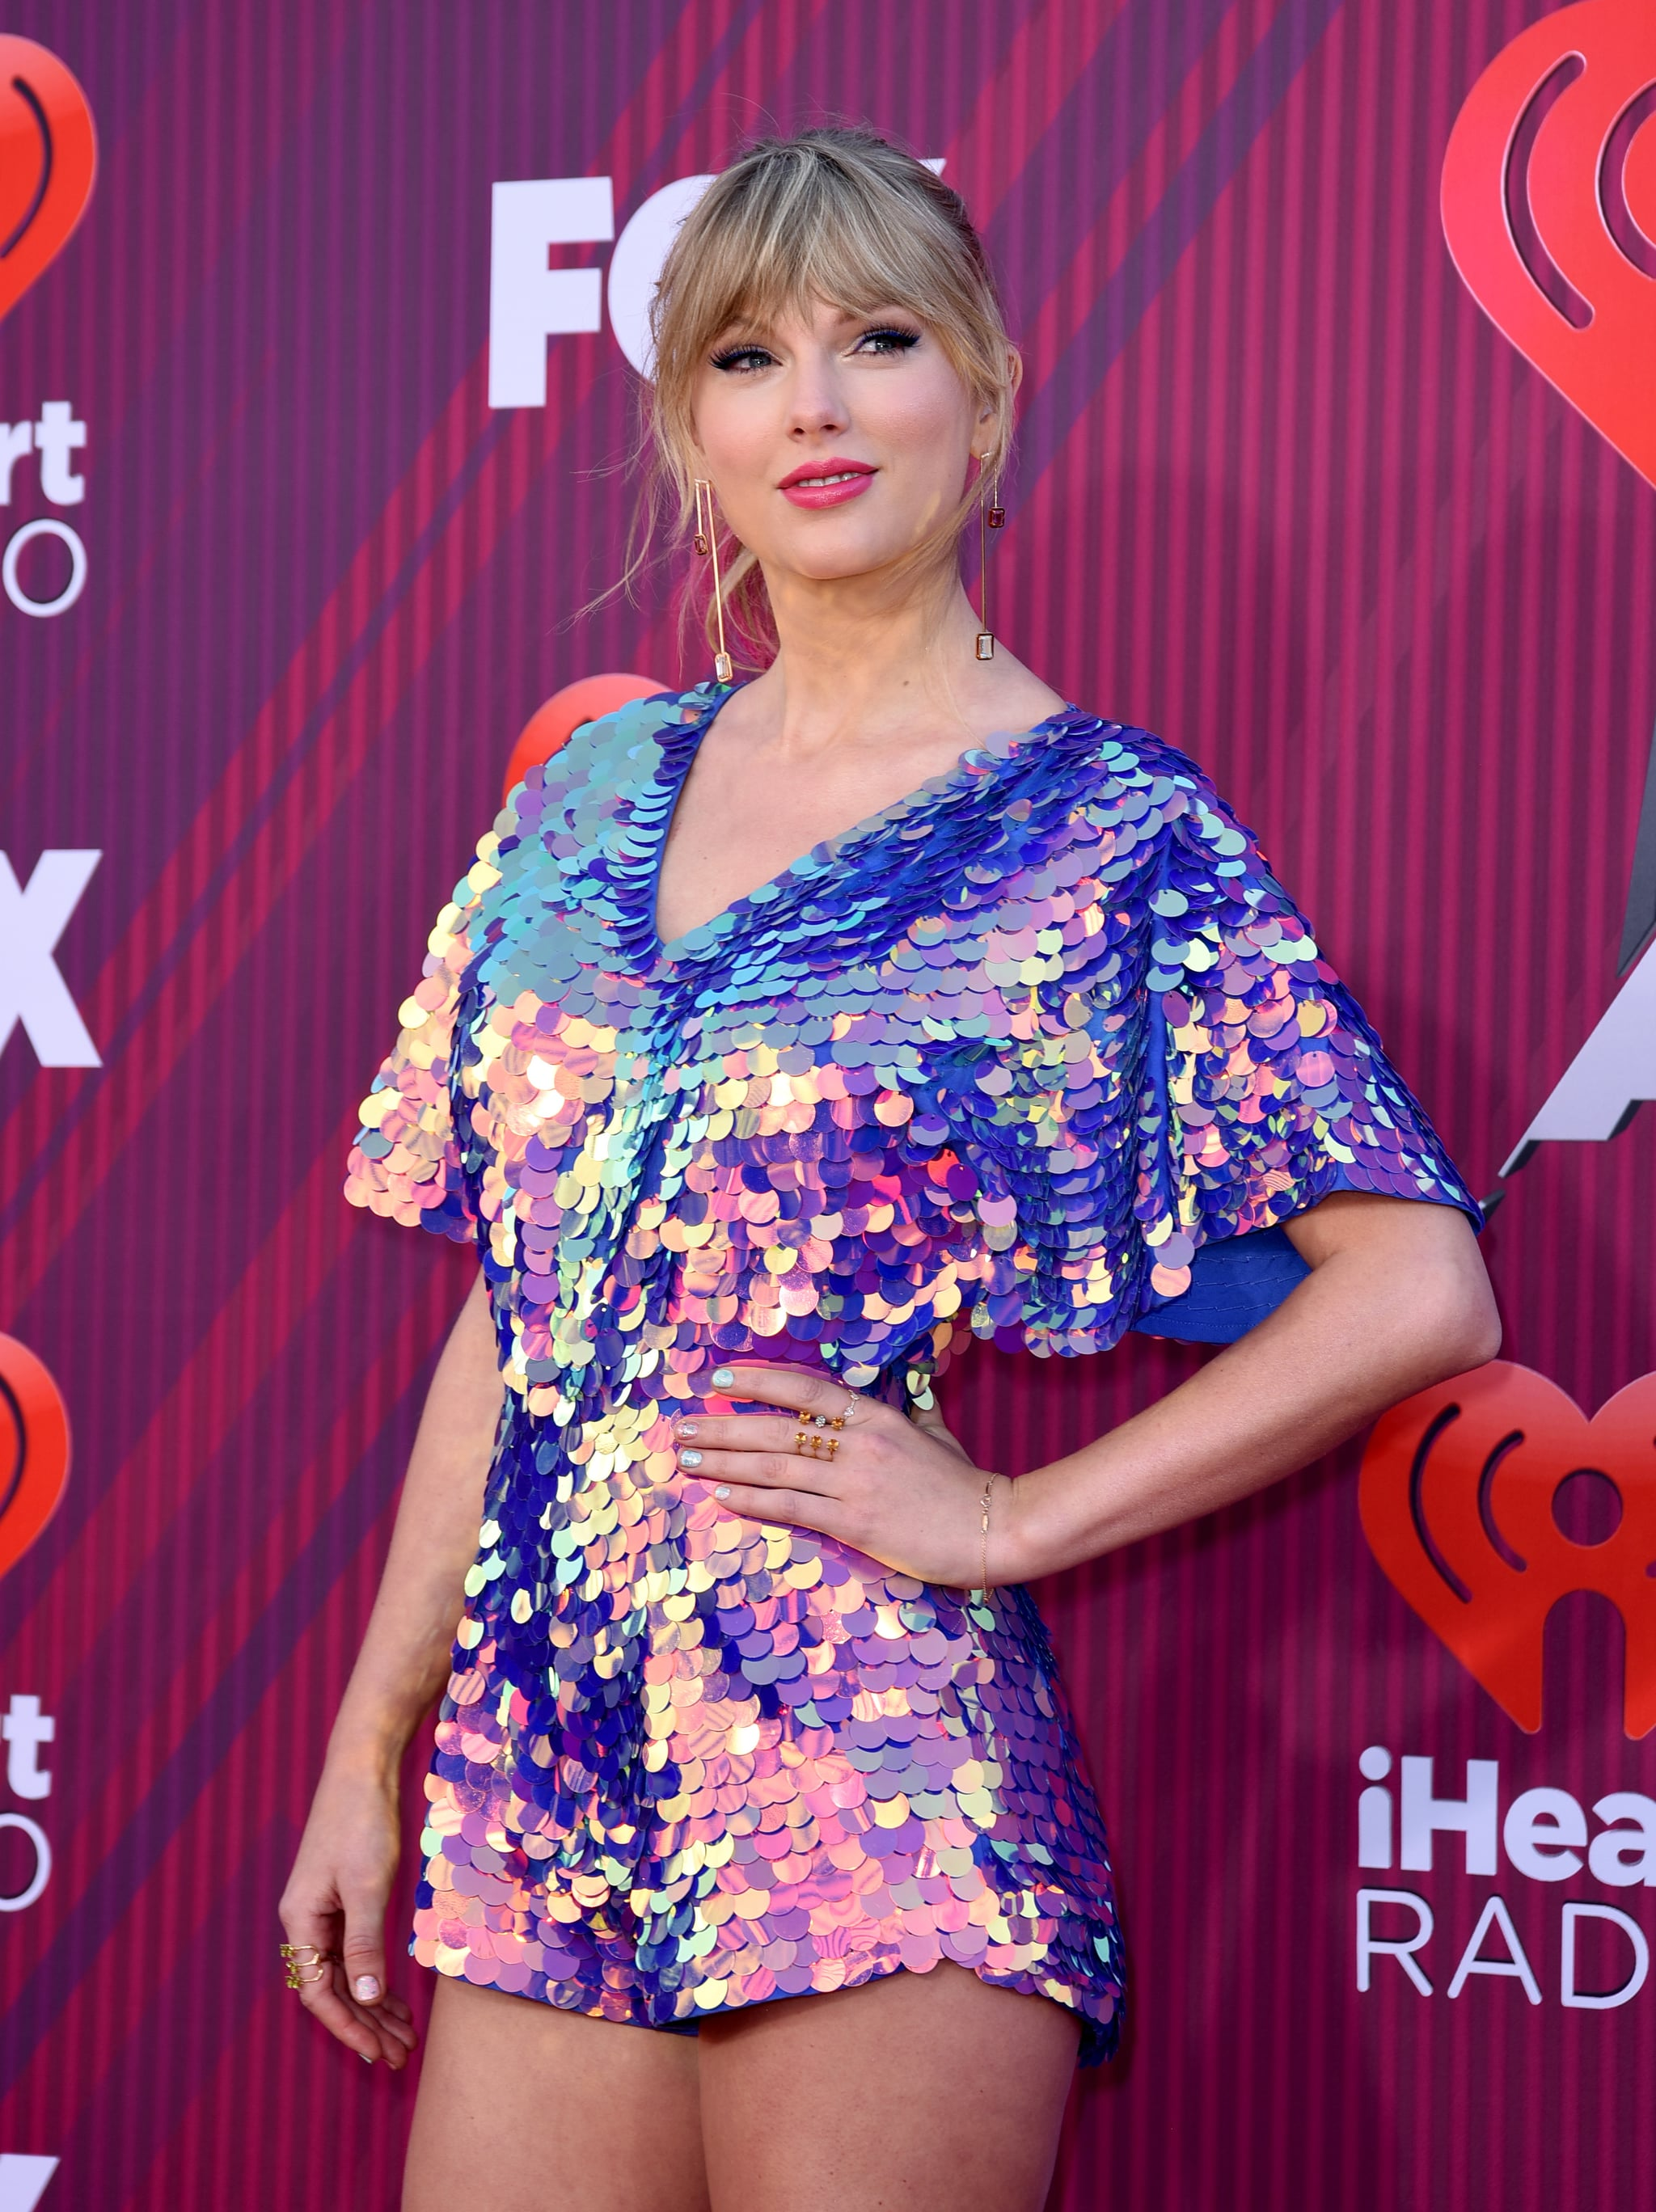 LOS ANGELES, CALIFORNIA - MARCH 14: Taylor Swift attends the 2019 iHeartRadio Music Awards which broadcasted live on FOX at Microsoft Theatre on March 14, 2019 in Los Angeles, California. (Photo by Presley Ann/WireImage)